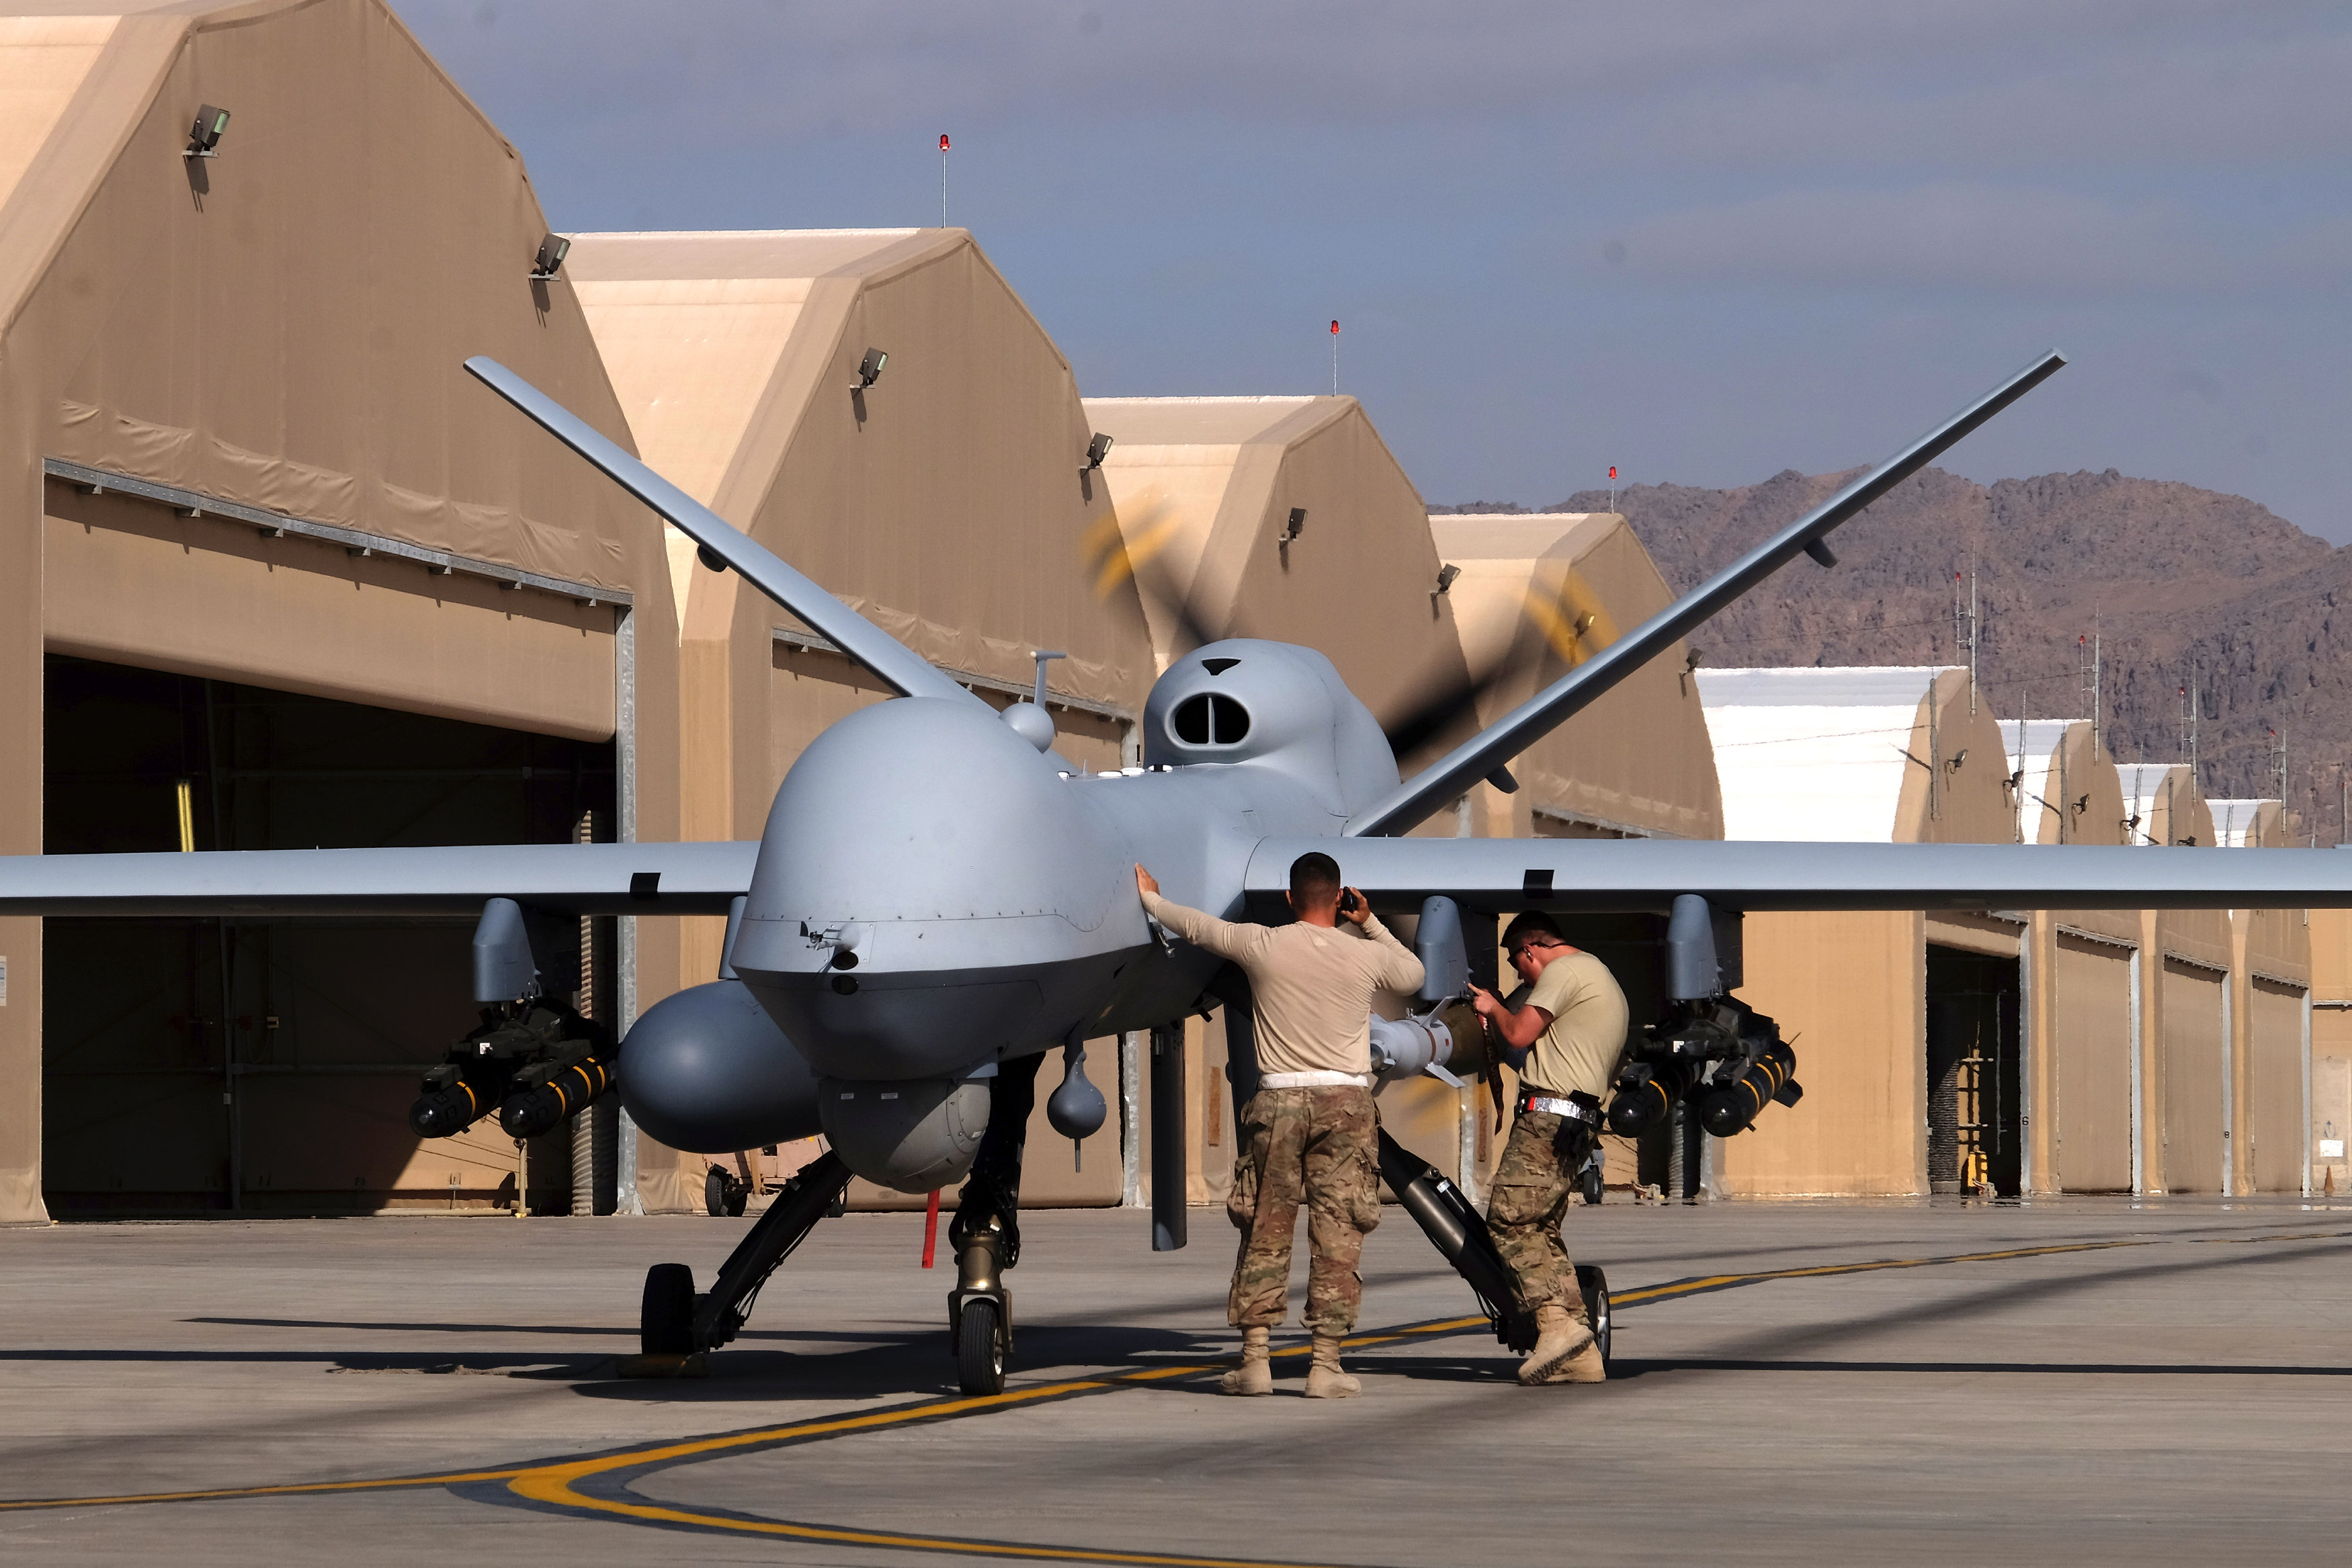 U.S. airmen prepare a U.S. Air Force MQ-9 Reaper drone as it leaves on a mission at Kandahar Air Field